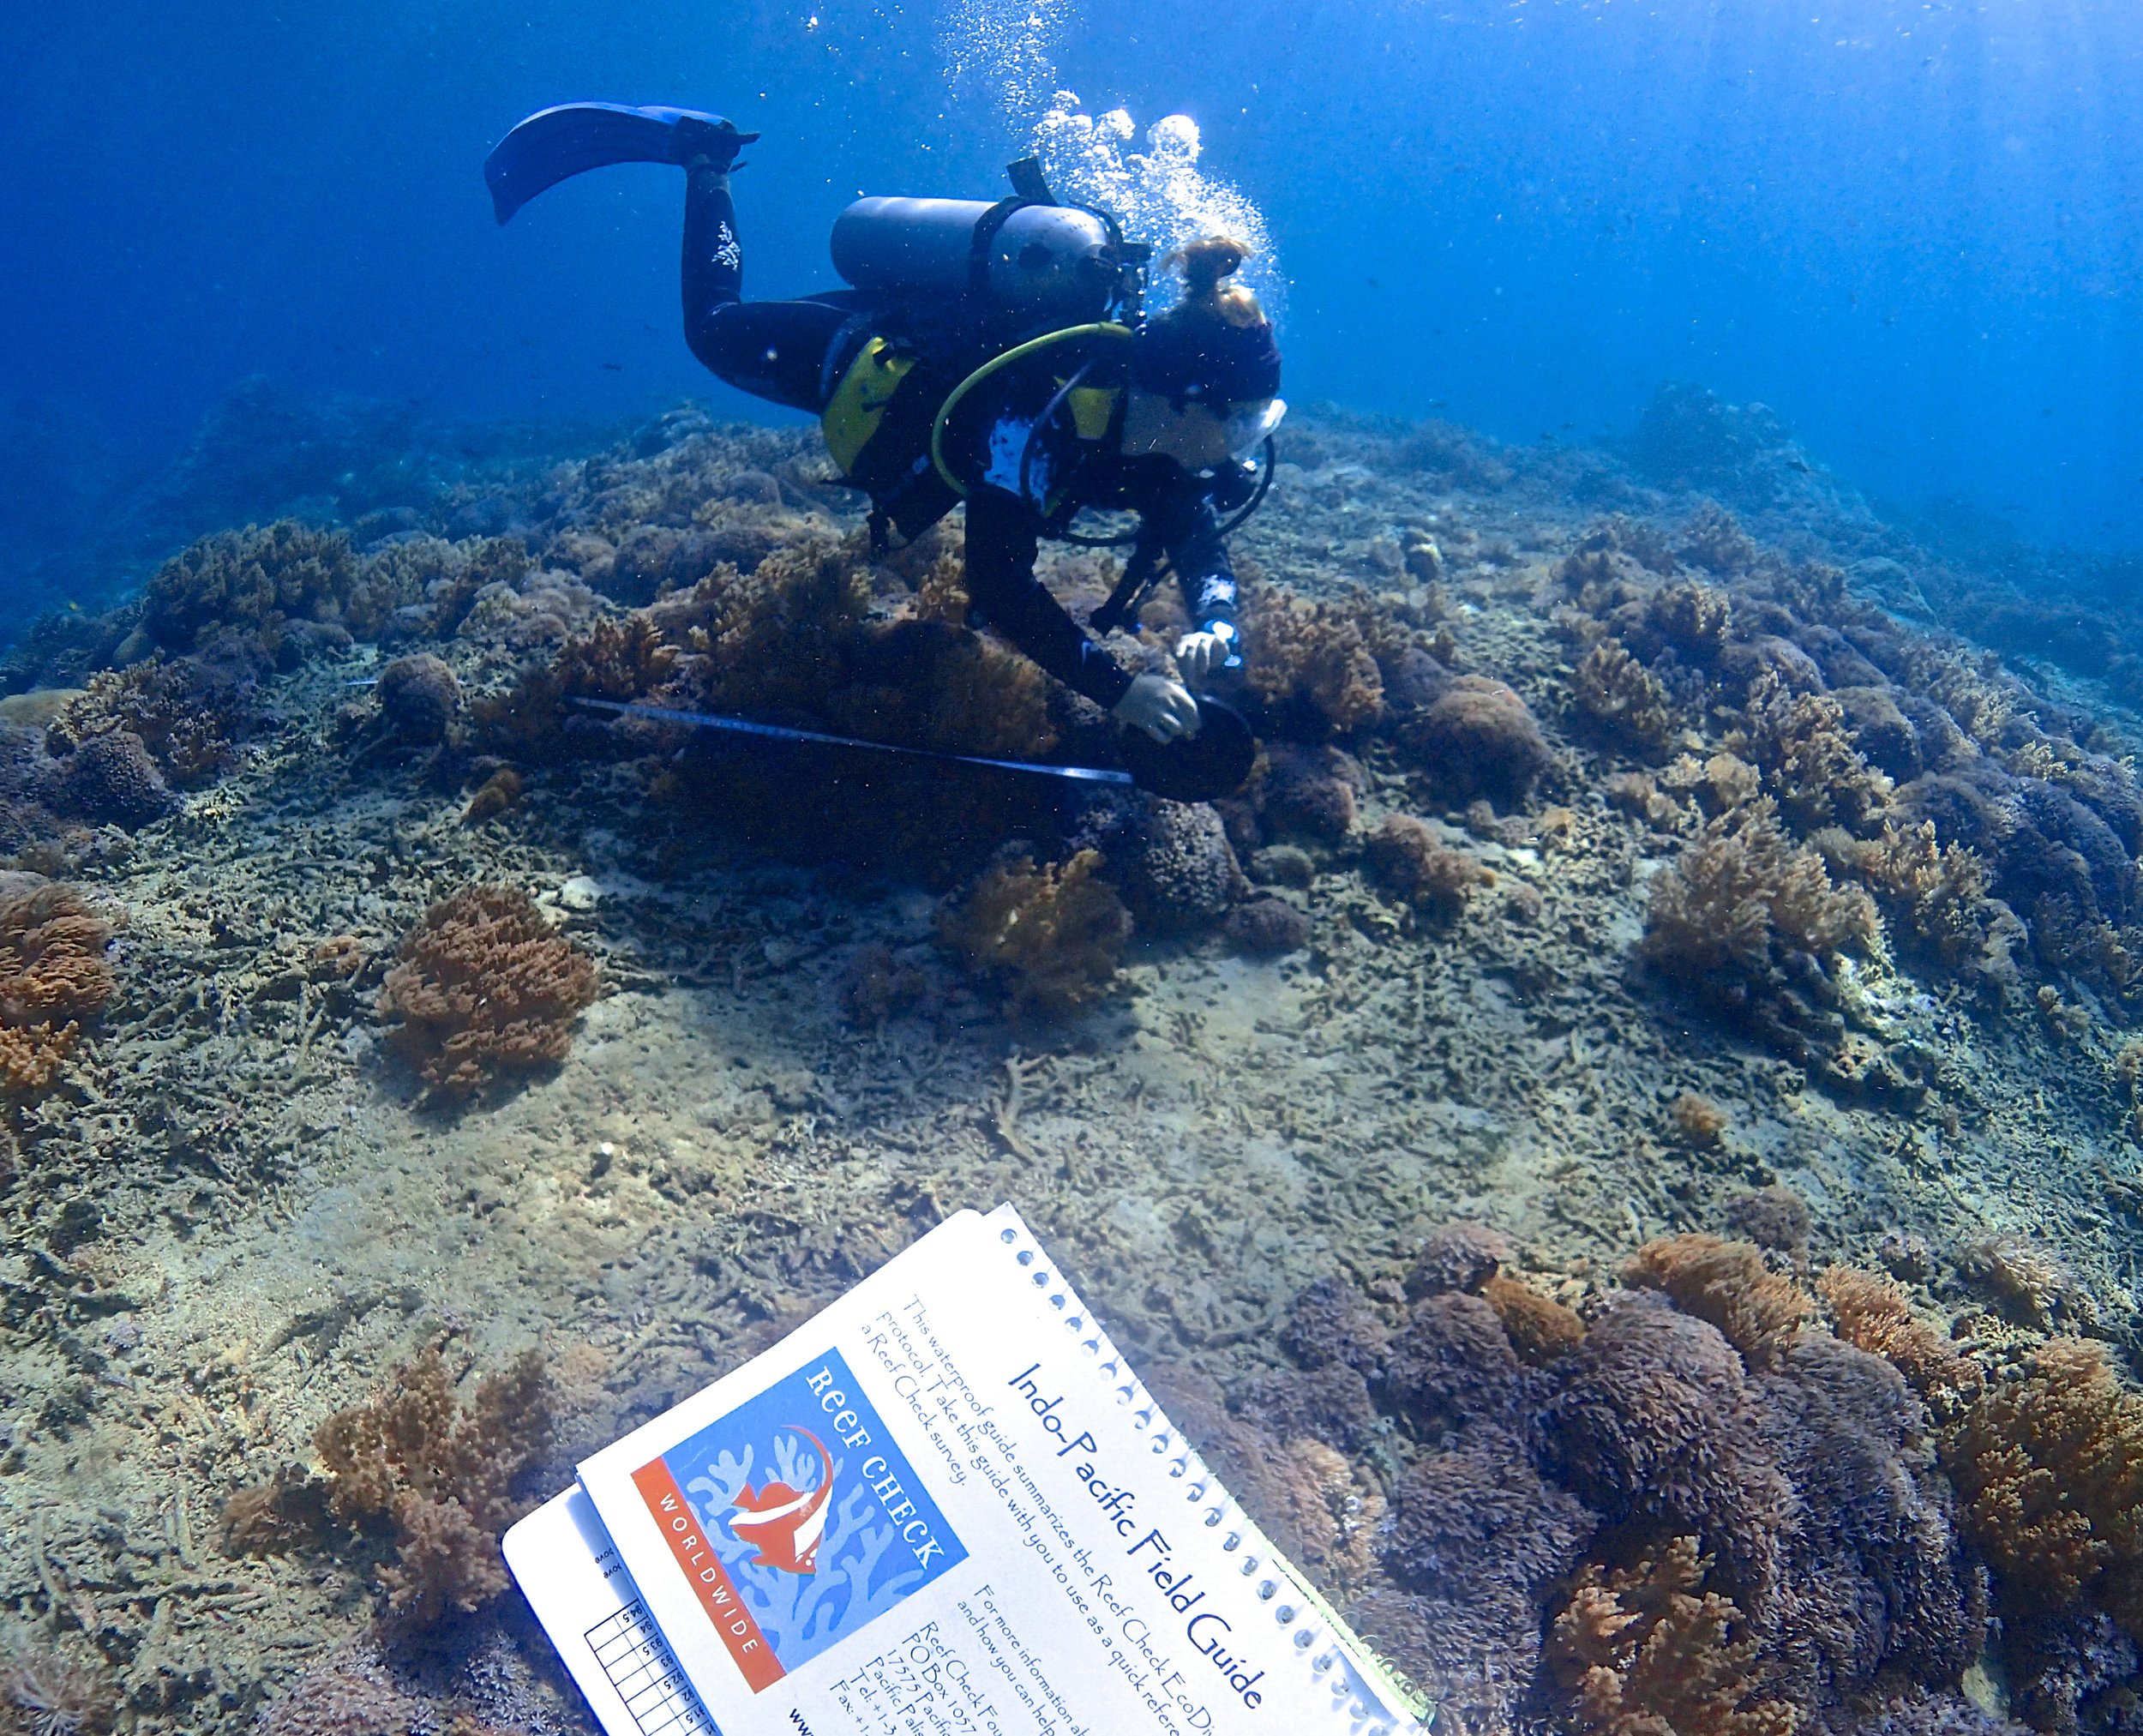 Reef check surveys in bali